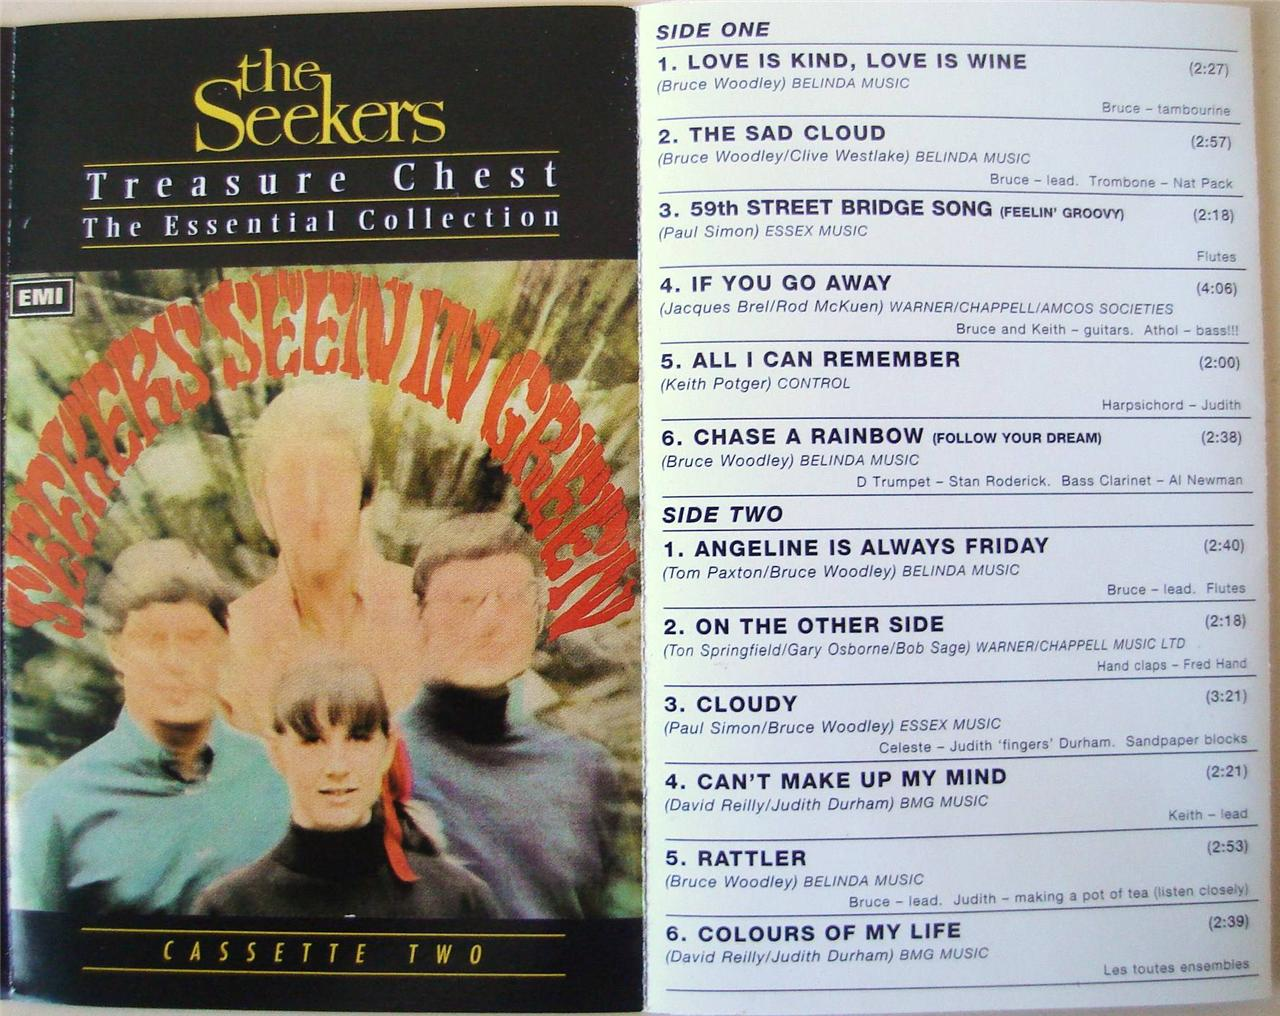 THE-SEEKERS-TREASURE-CHEST-CASSETTE-2-Rare-Cassette-Tape-Pop-Folk